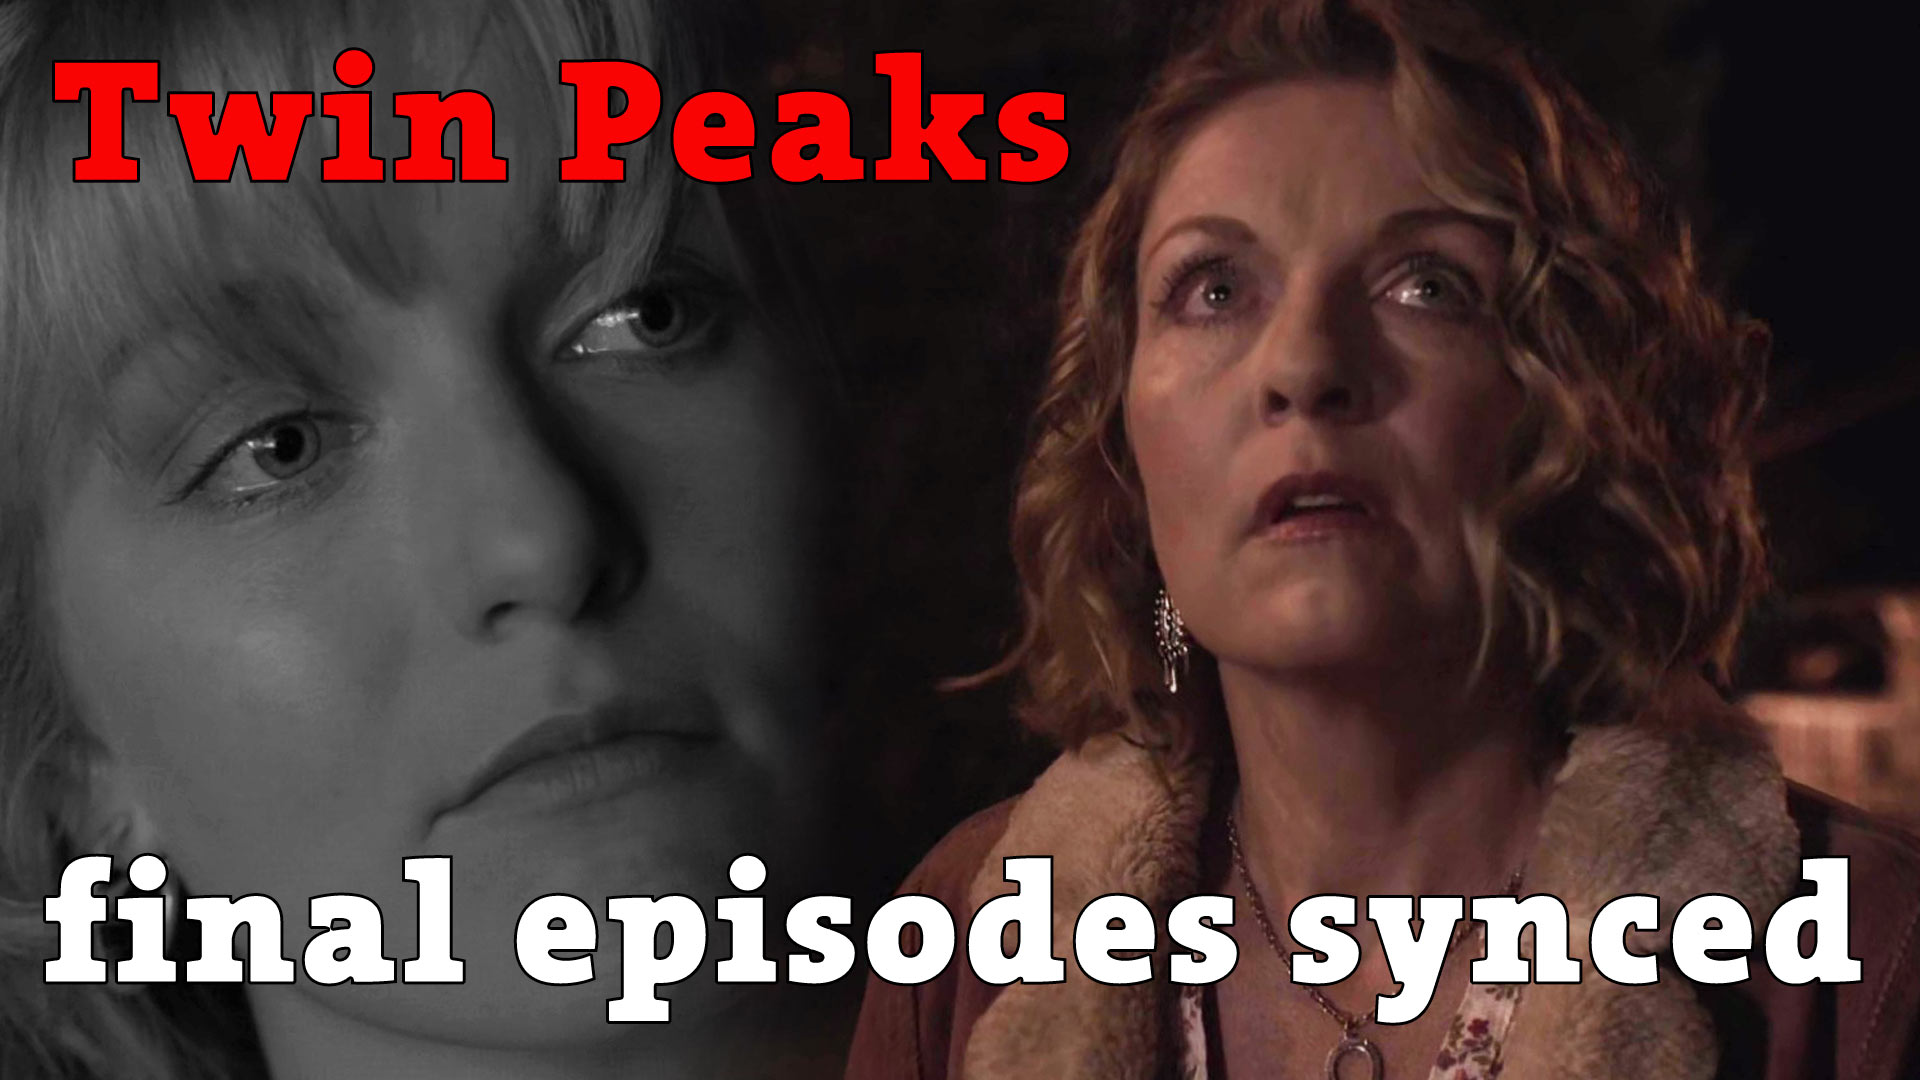 Twin Peaks final episodes synced